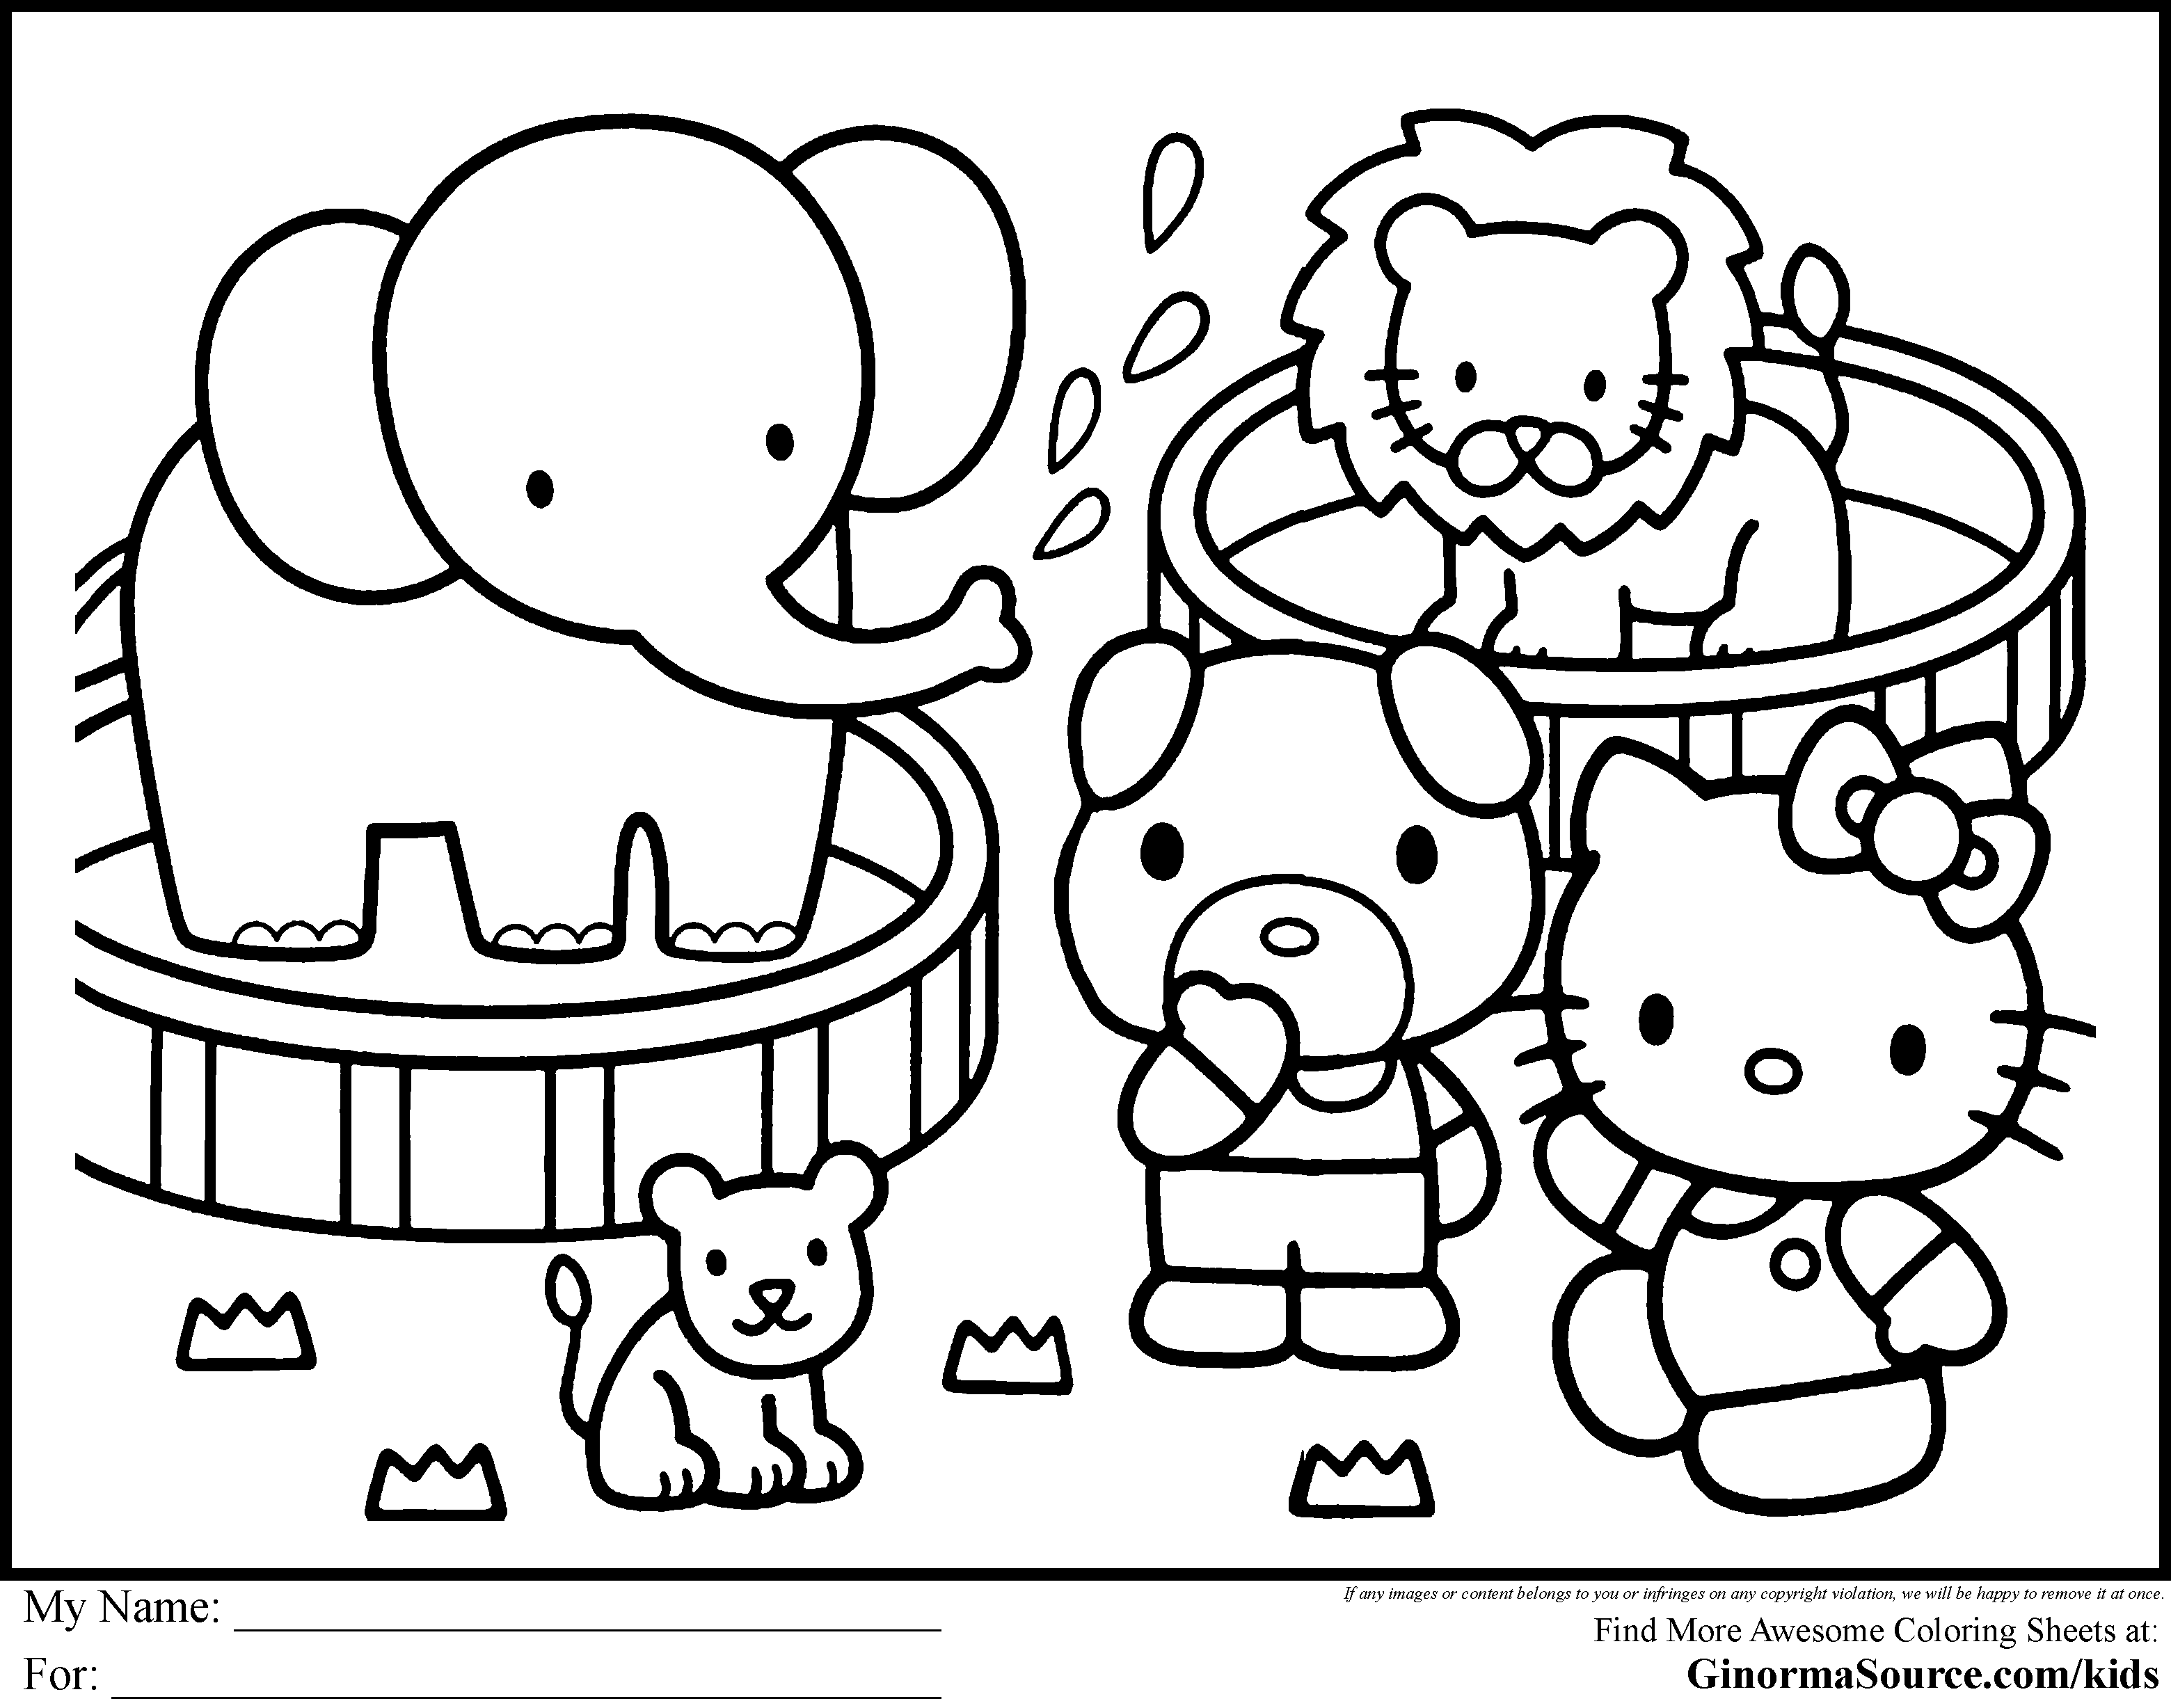 welcome in free coloring pages site in this site you will find a lot of coloring pages in many kind of pictures all of it in this site is free